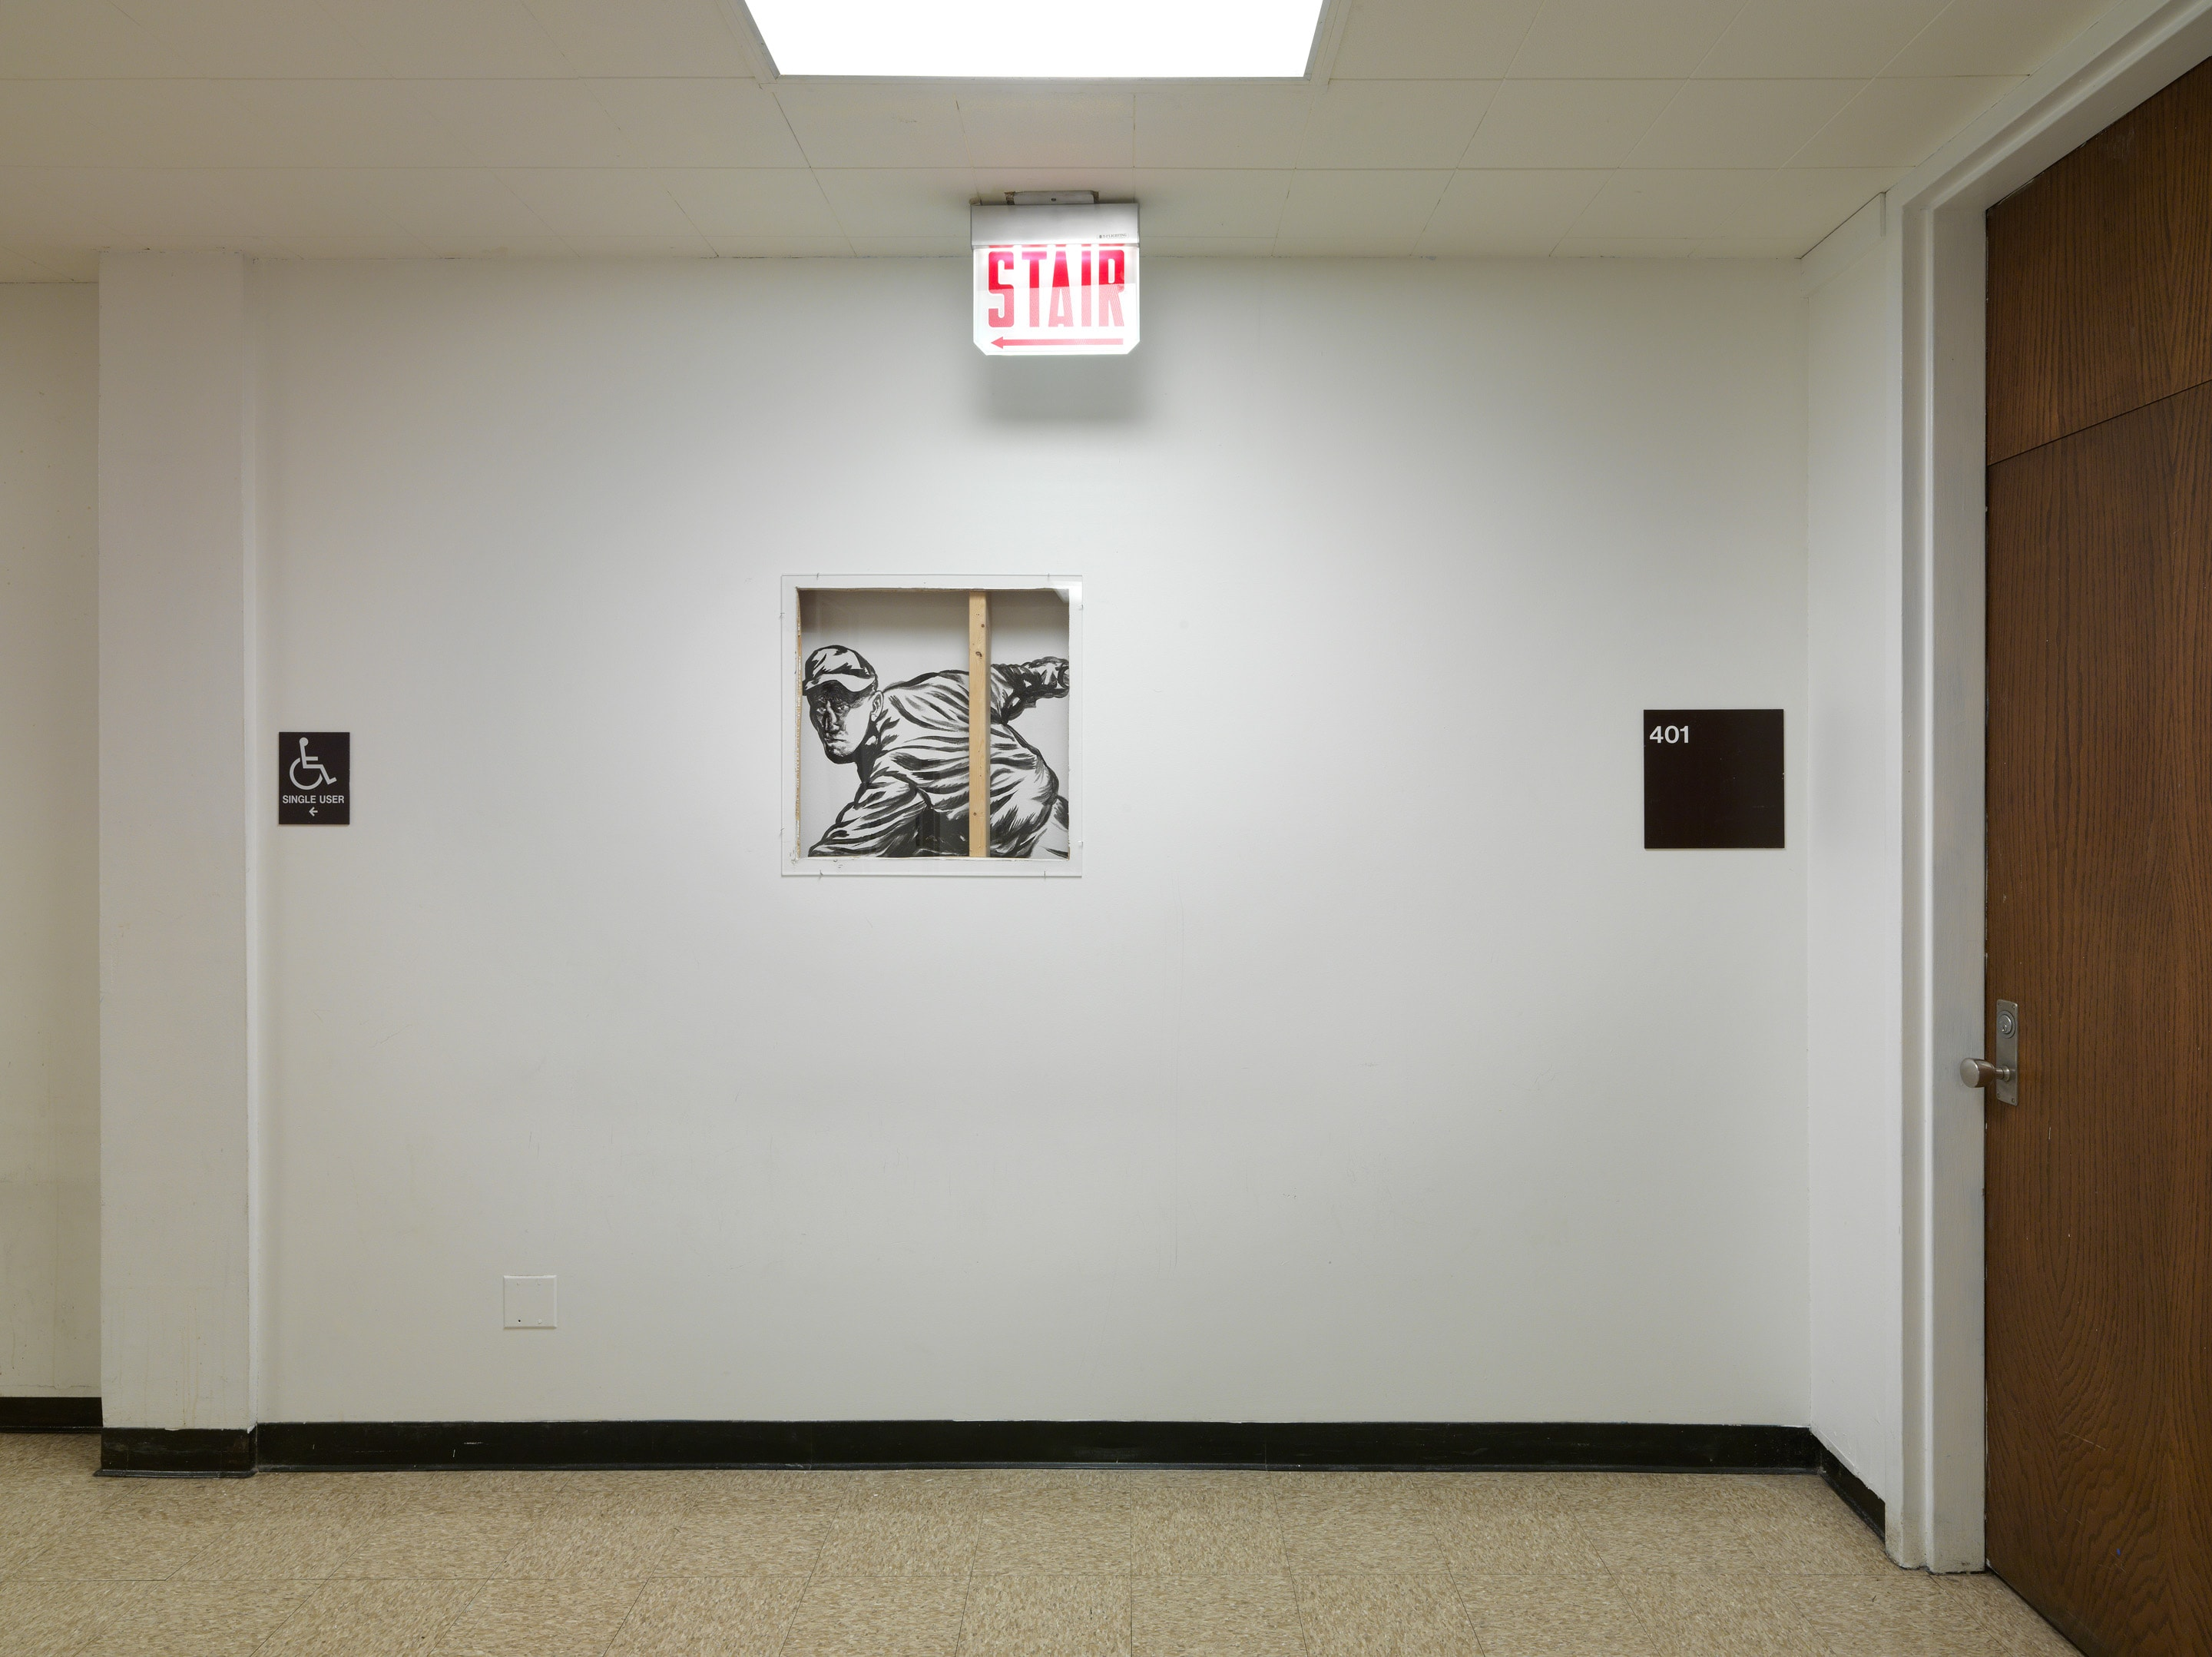 A white wall covers all but one small section of a mural, black-and-white, viewable through a square